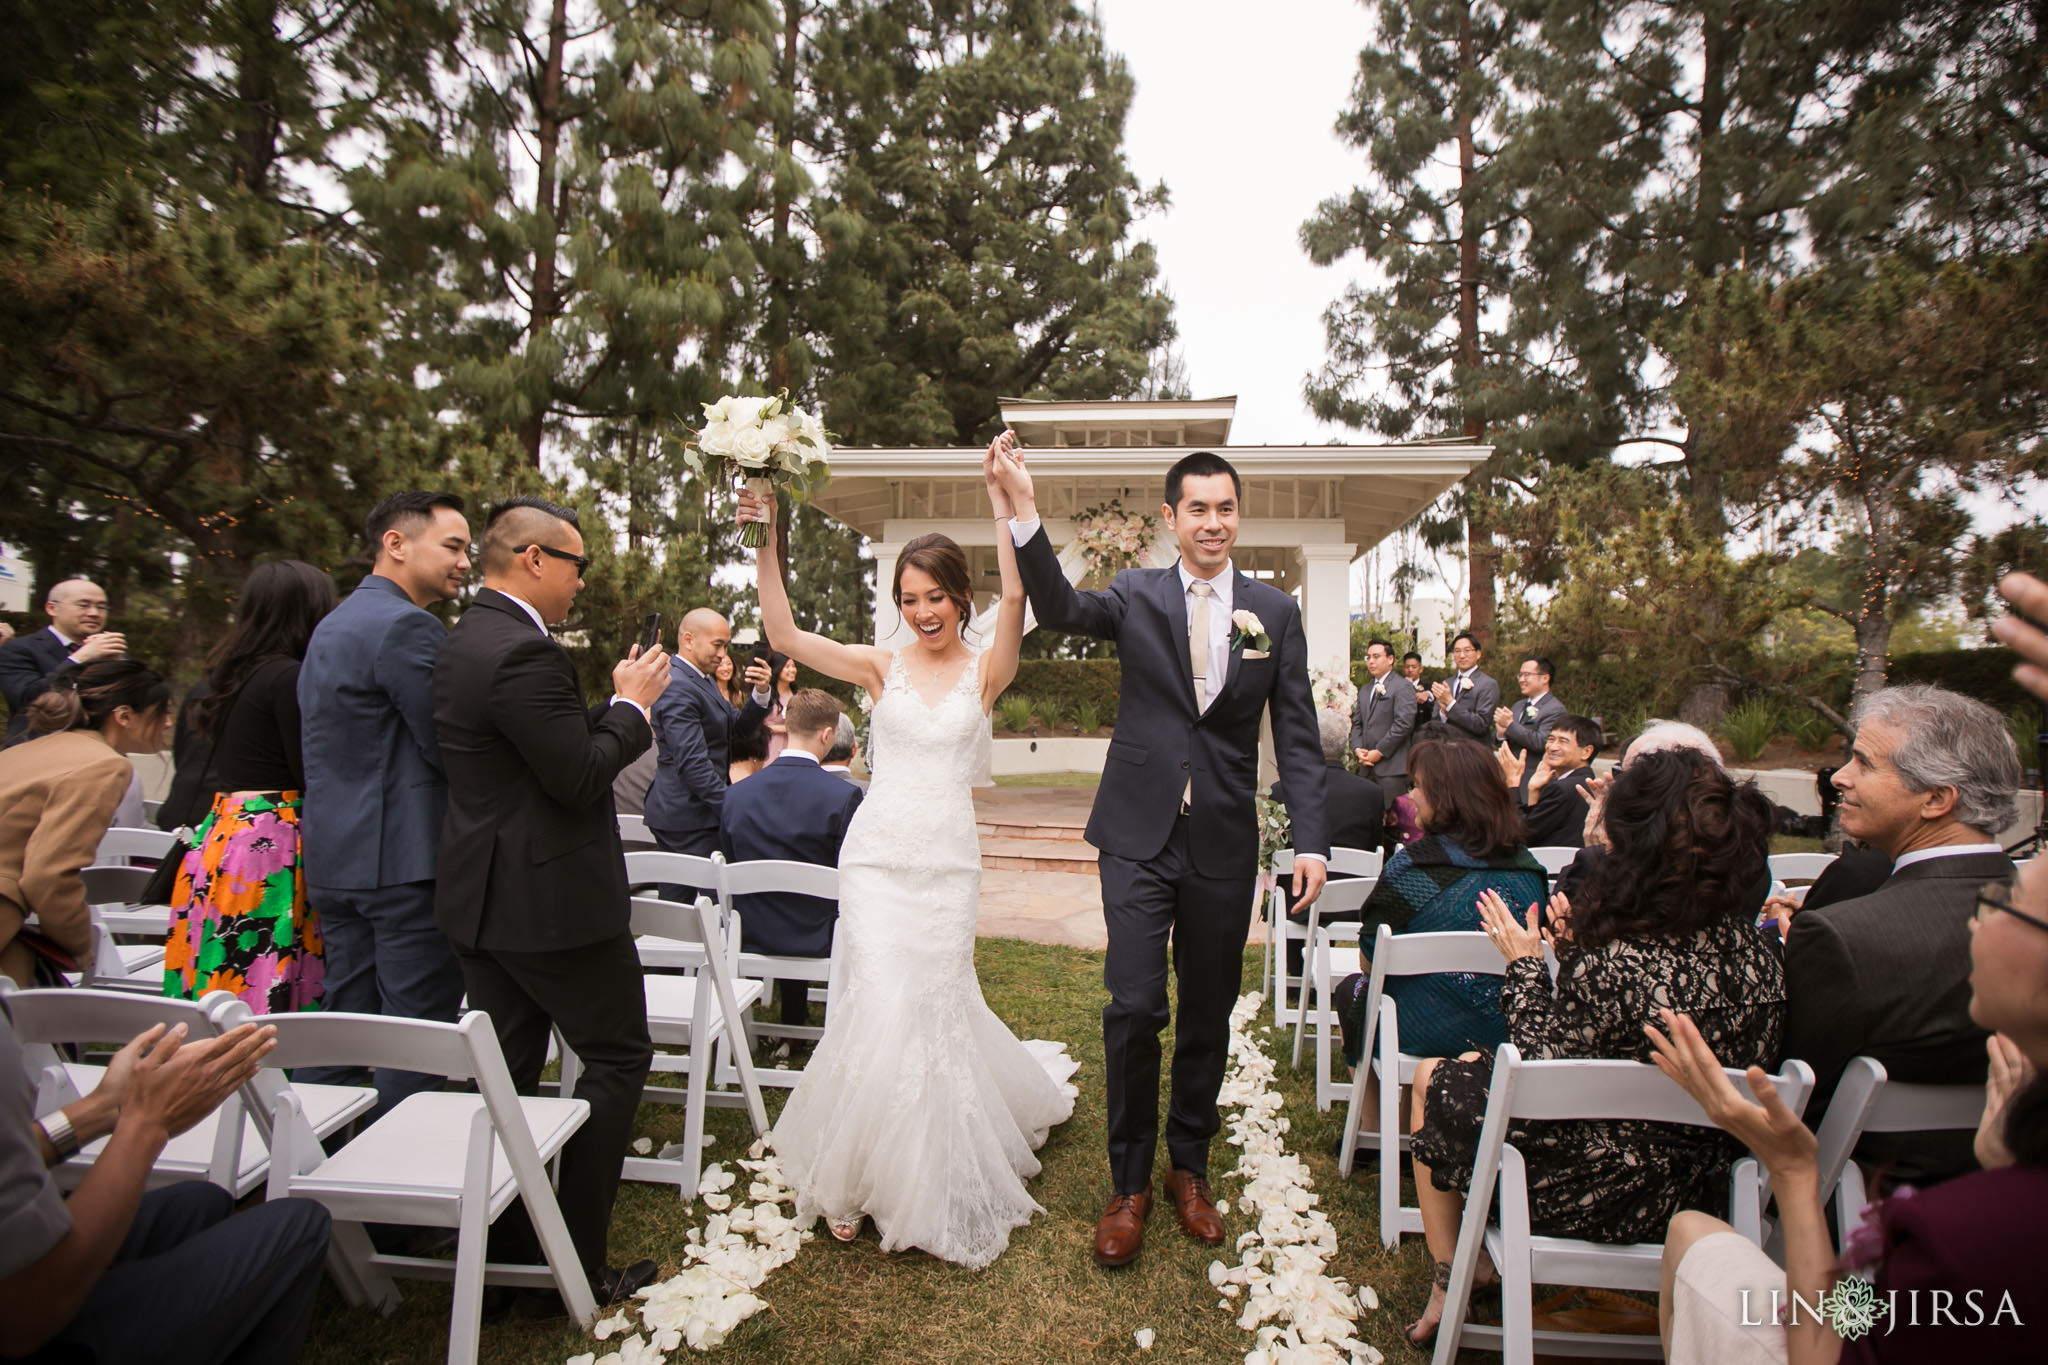 22 turnip rose promenade orange county wedding ceremony photography